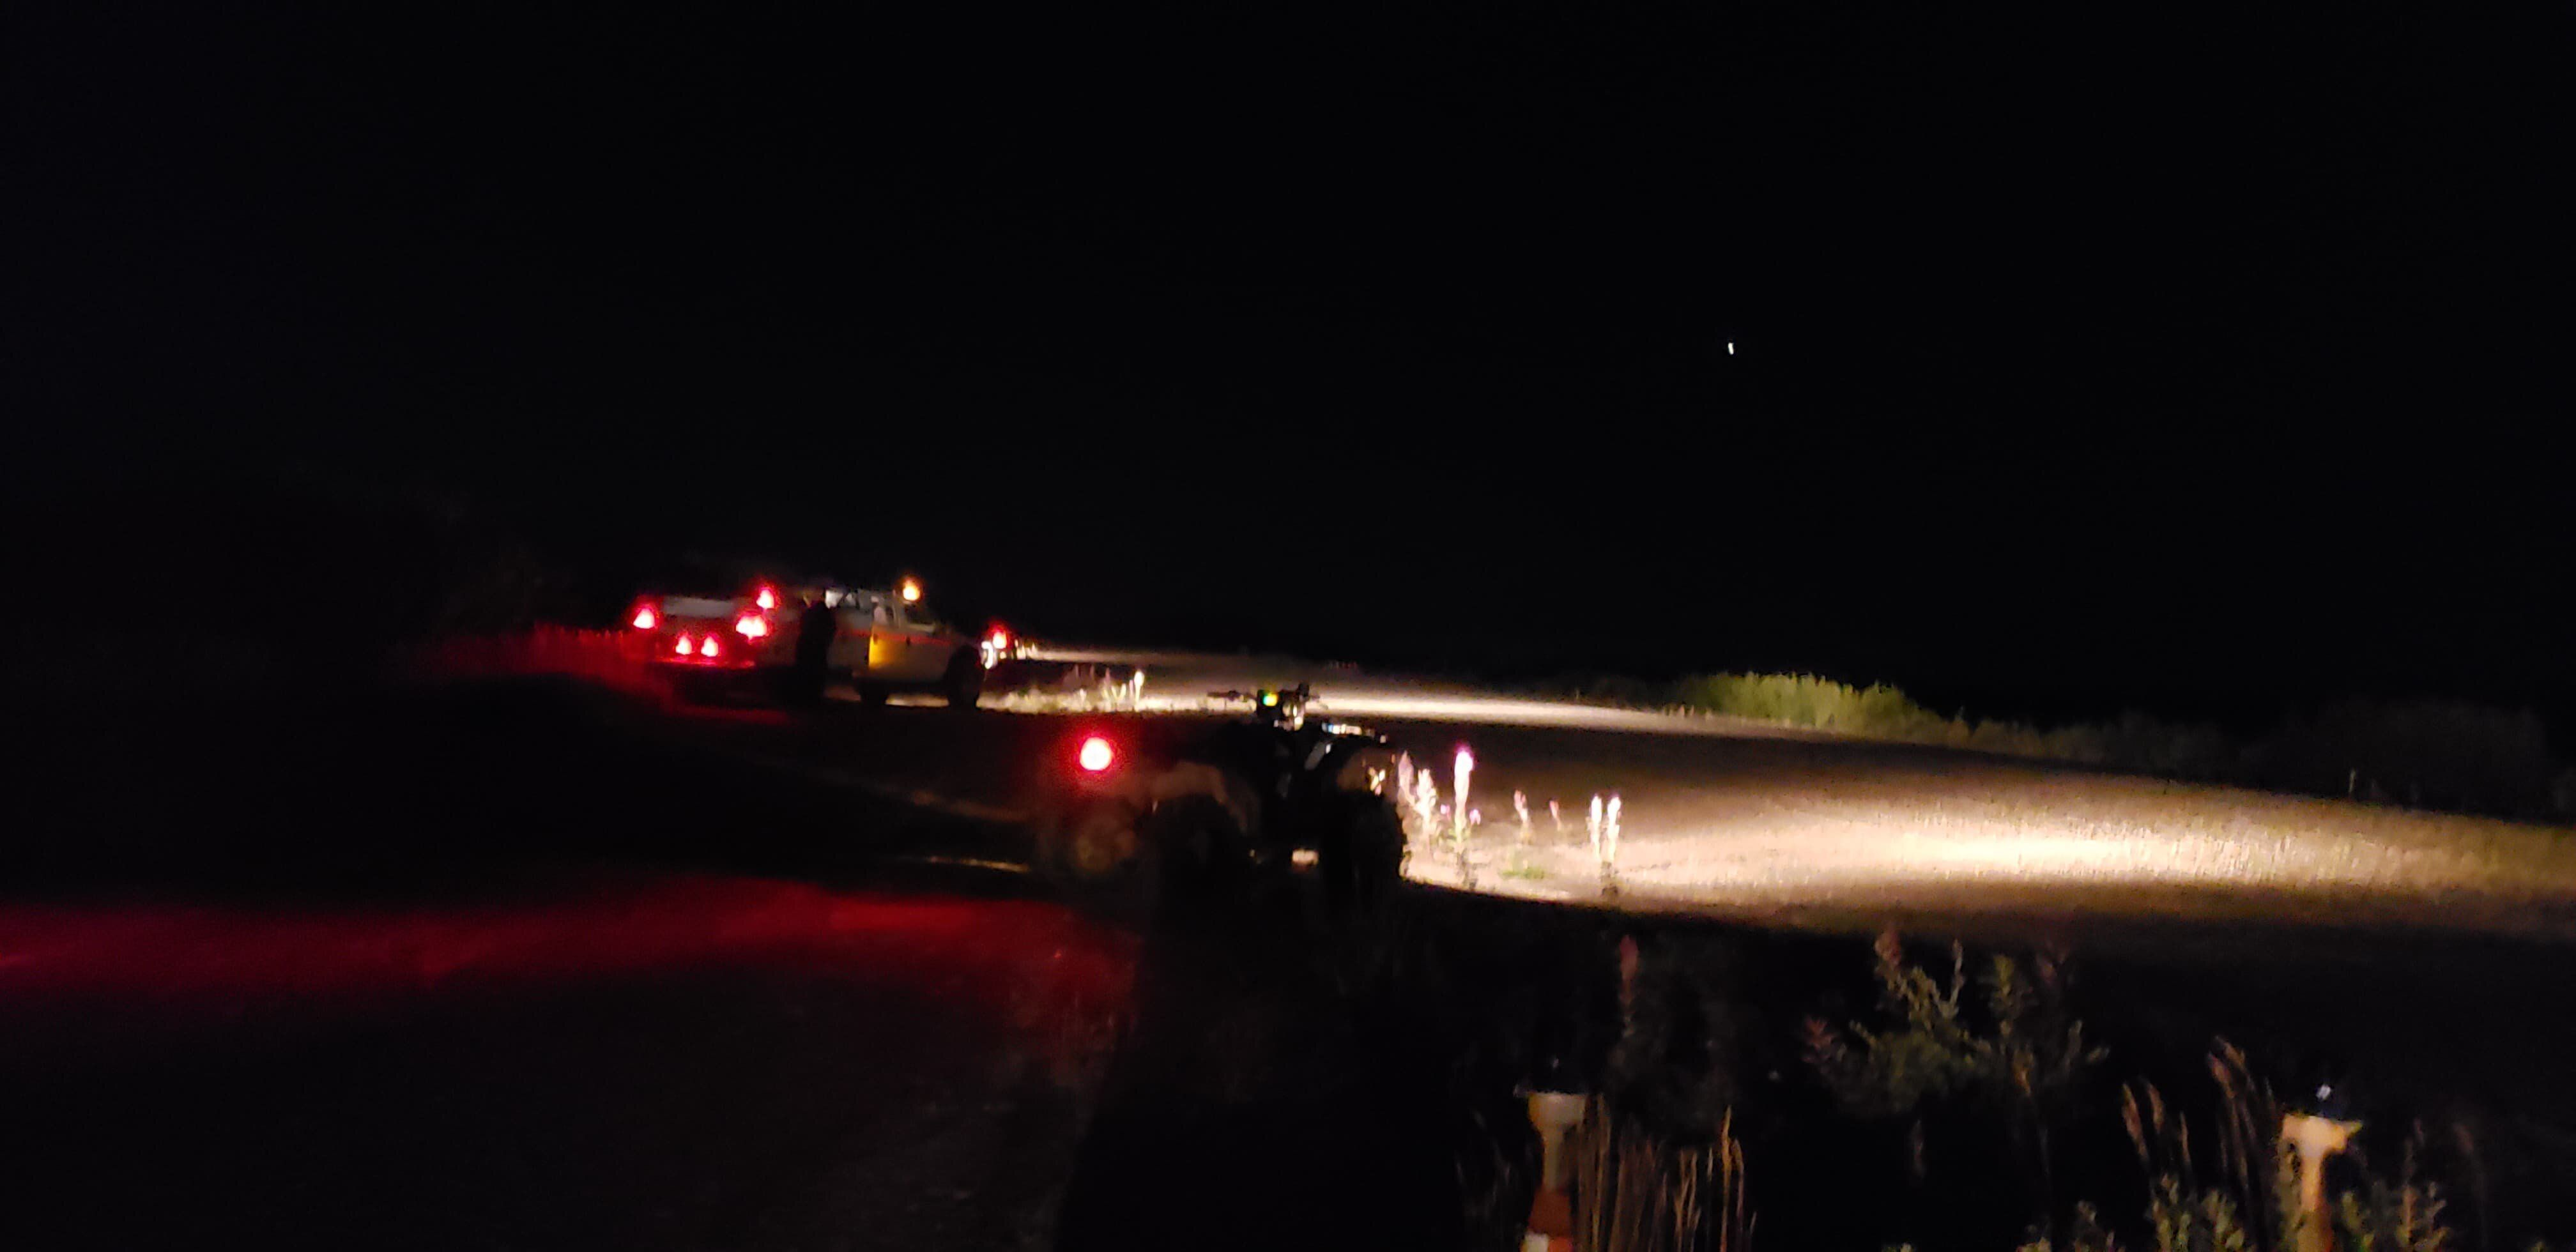 Residents of Igiugig lit up the runway of the village's small airport with their vehicles, enabling a medical assistance plan